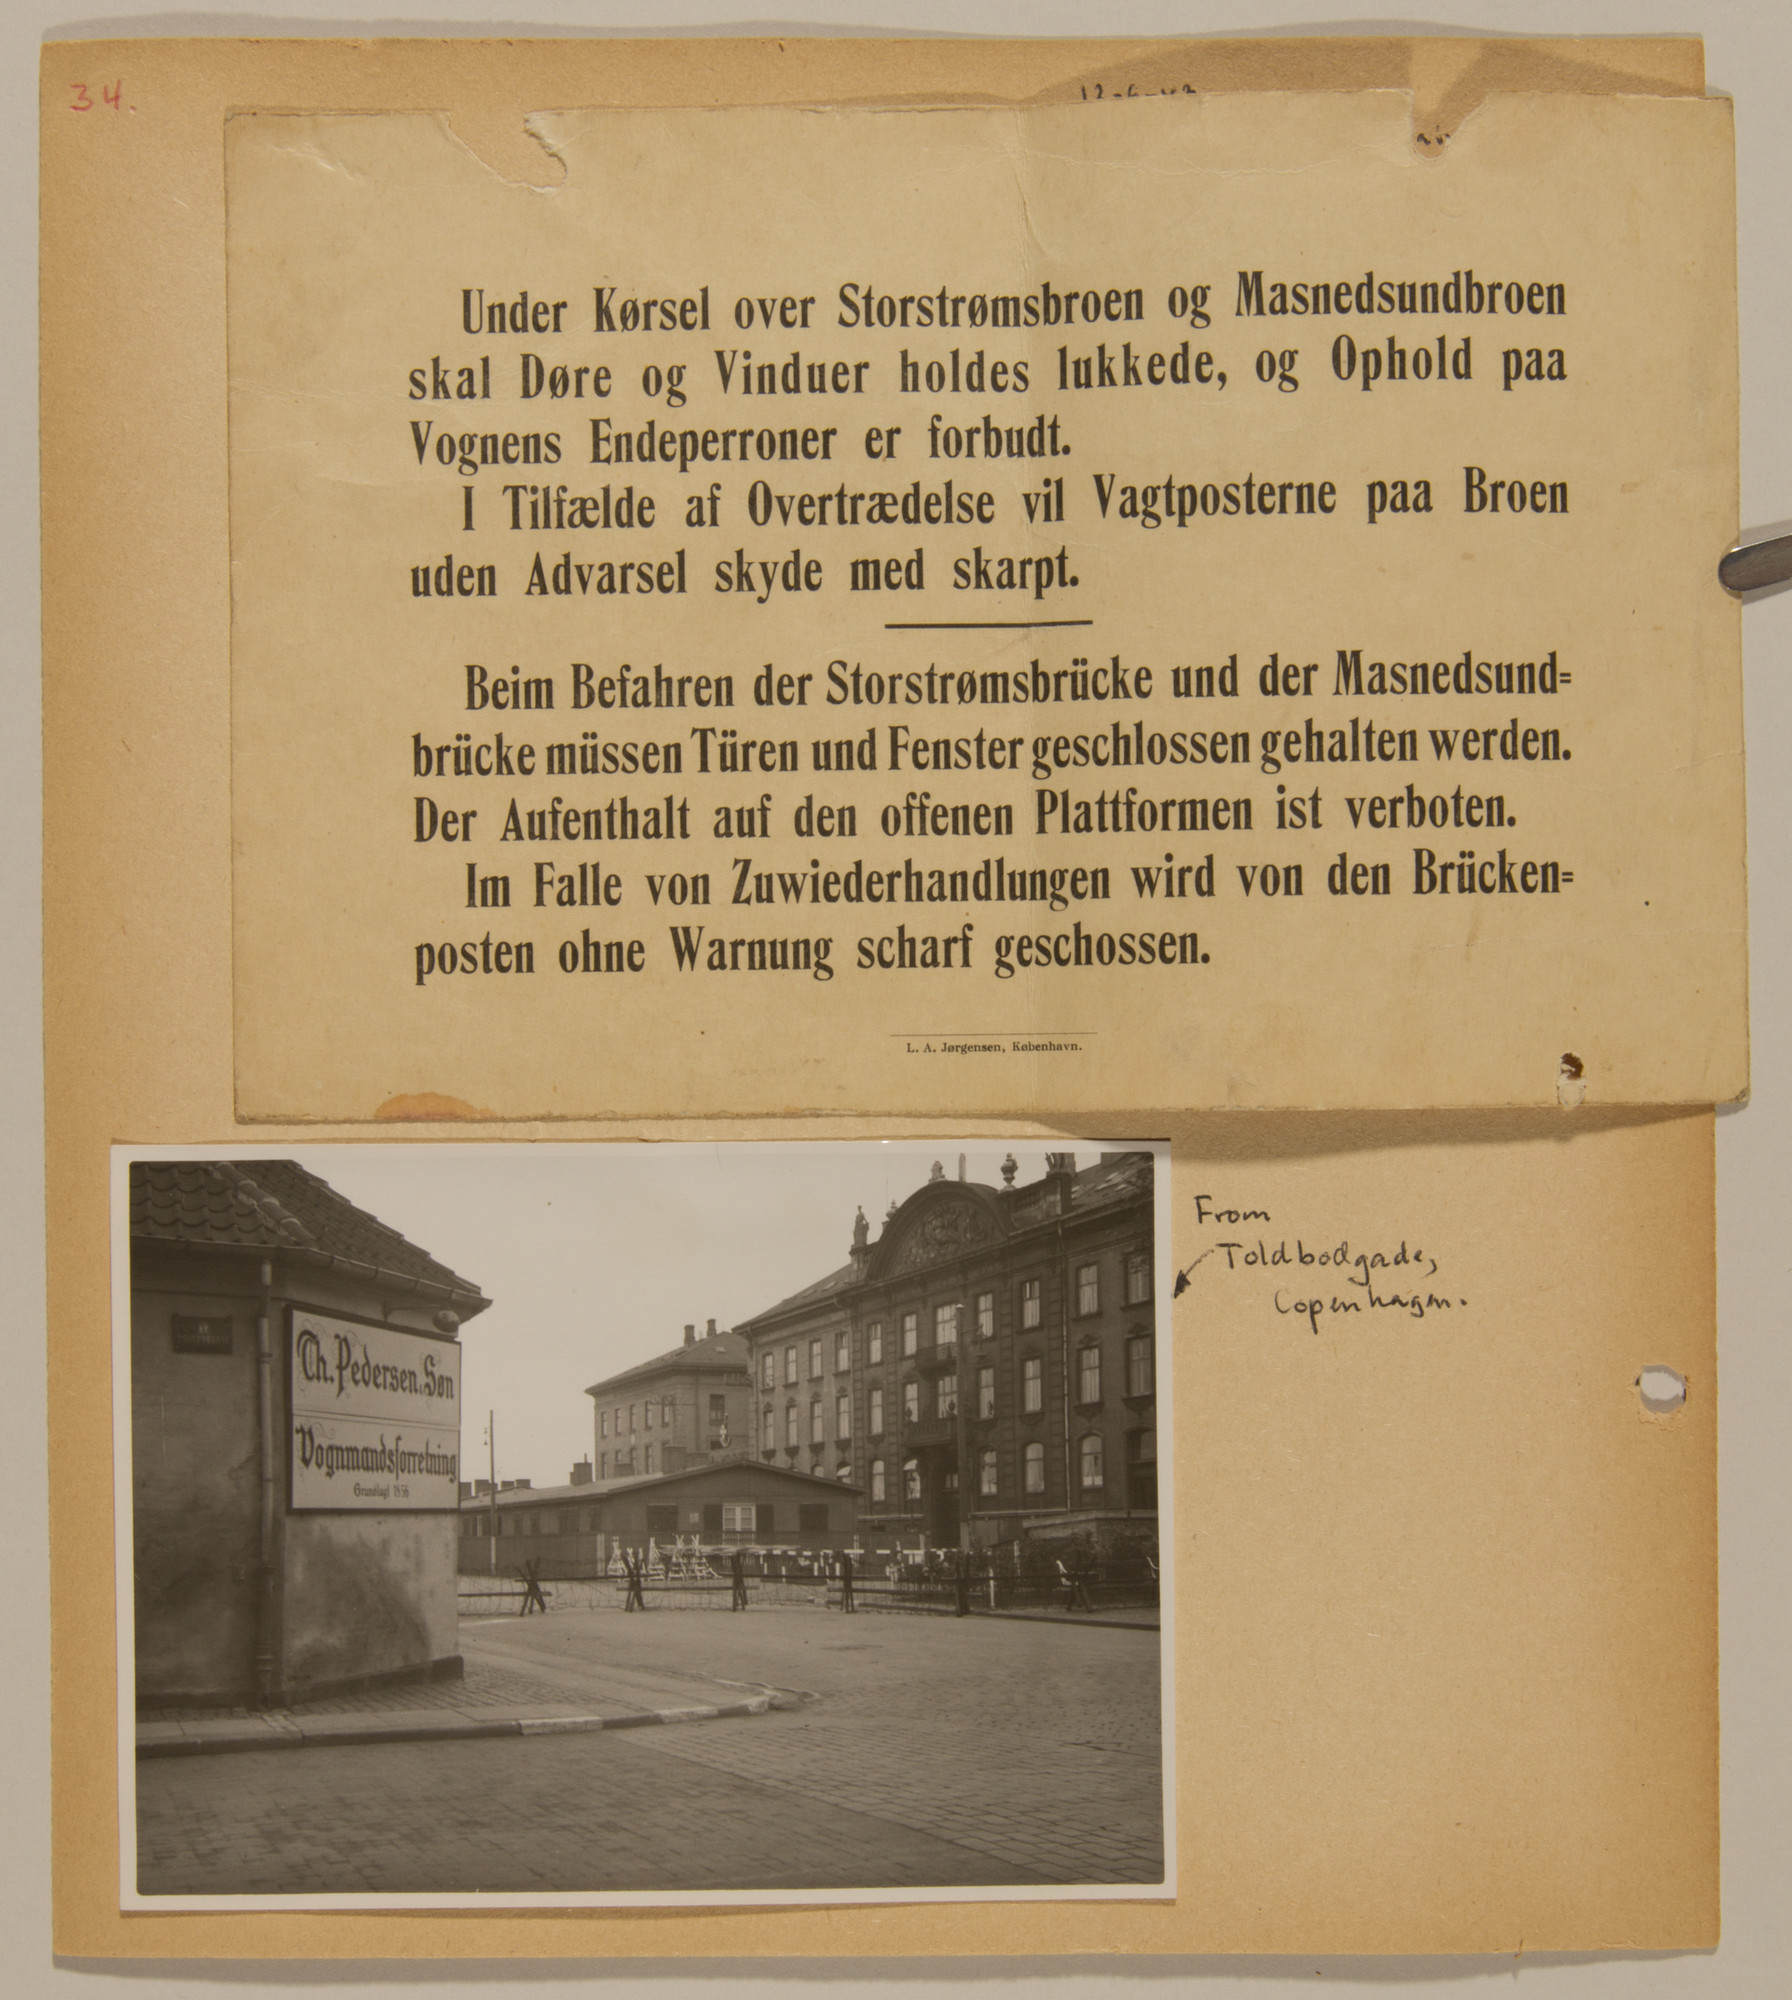 Page from volume four of a set of scrapbooks compiled by Bjorn Sibbern, a Danish policeman and resistance member, documenting the German occupation of Denmark.  This page contains a warning not to leave the train at two places, and that sentries will shoot without warning.